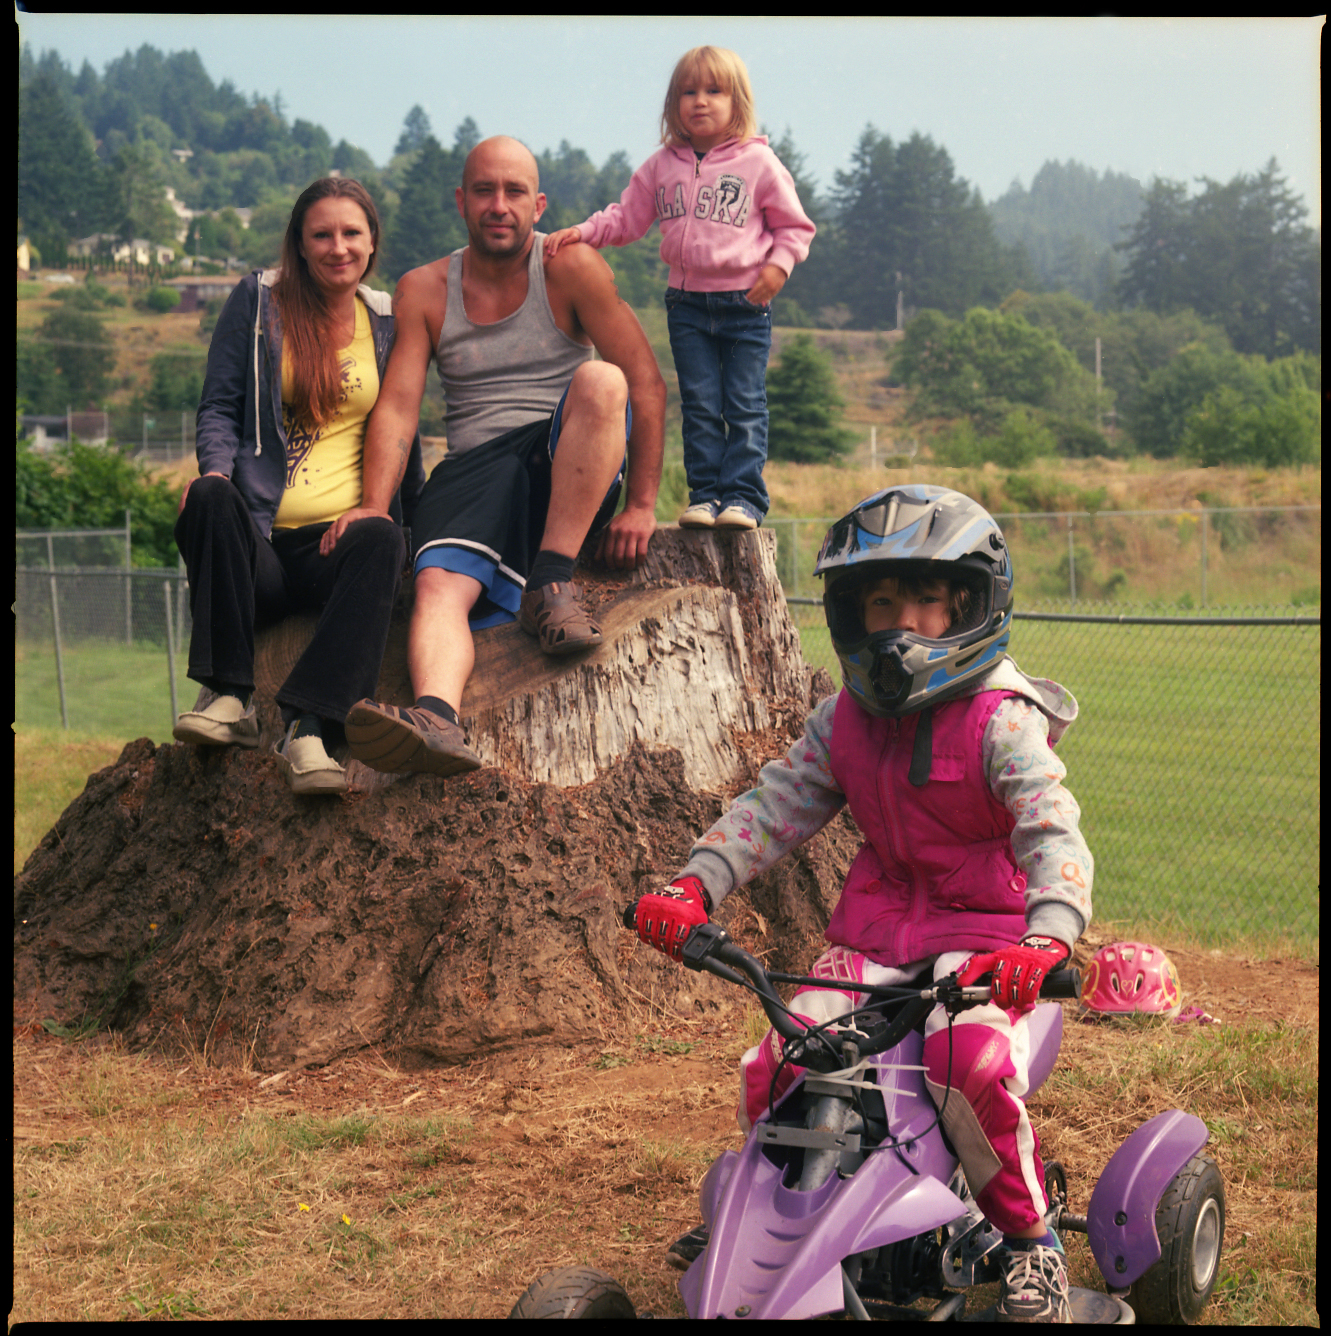 The Davis family at Azalea Park in Brookings, Oregon.  Photo by Jim Hair